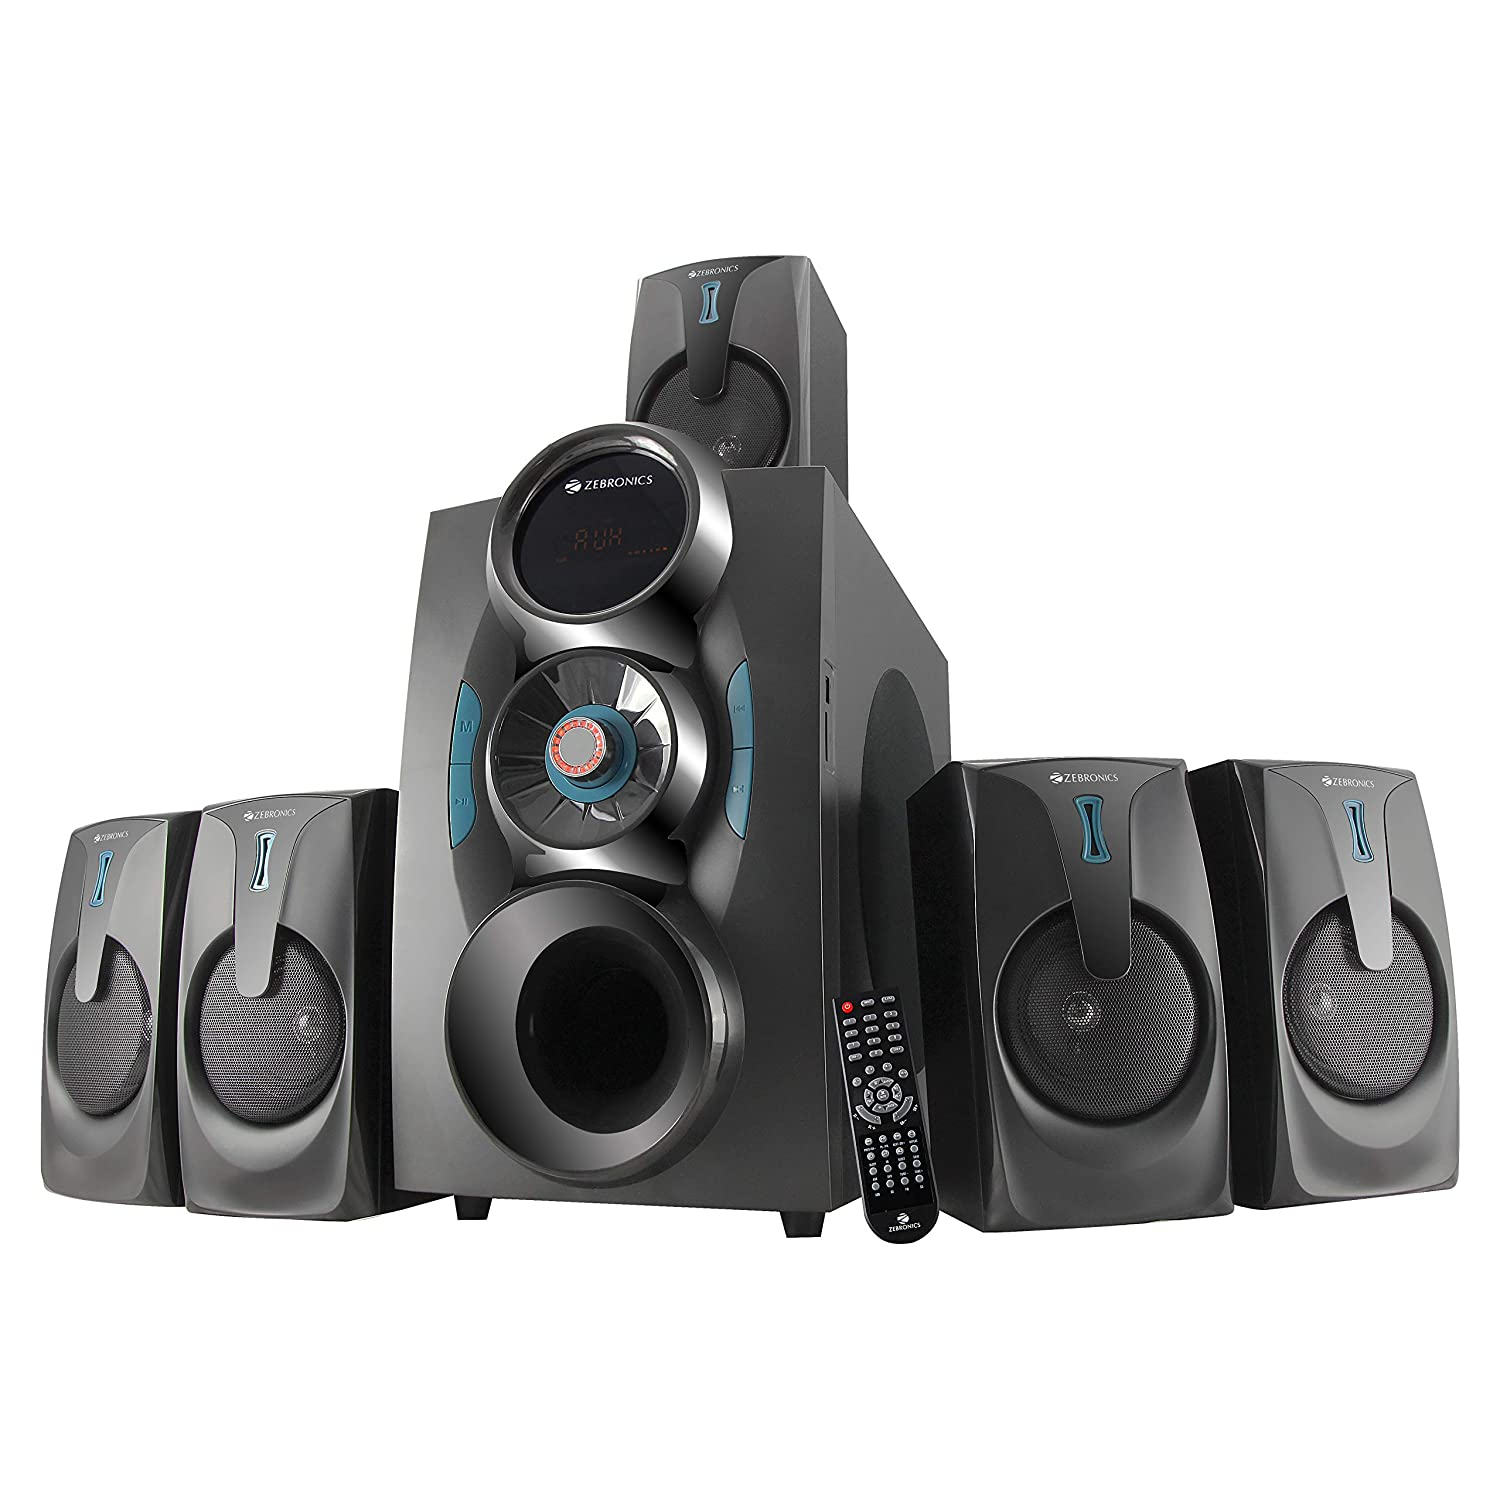 Zebronics ZEB-BT9451 5.1 Multimedia Speaker with Bluetooth Supporting USB, AUX, SD Card, MMC Card, Built-in FM and Remote Control